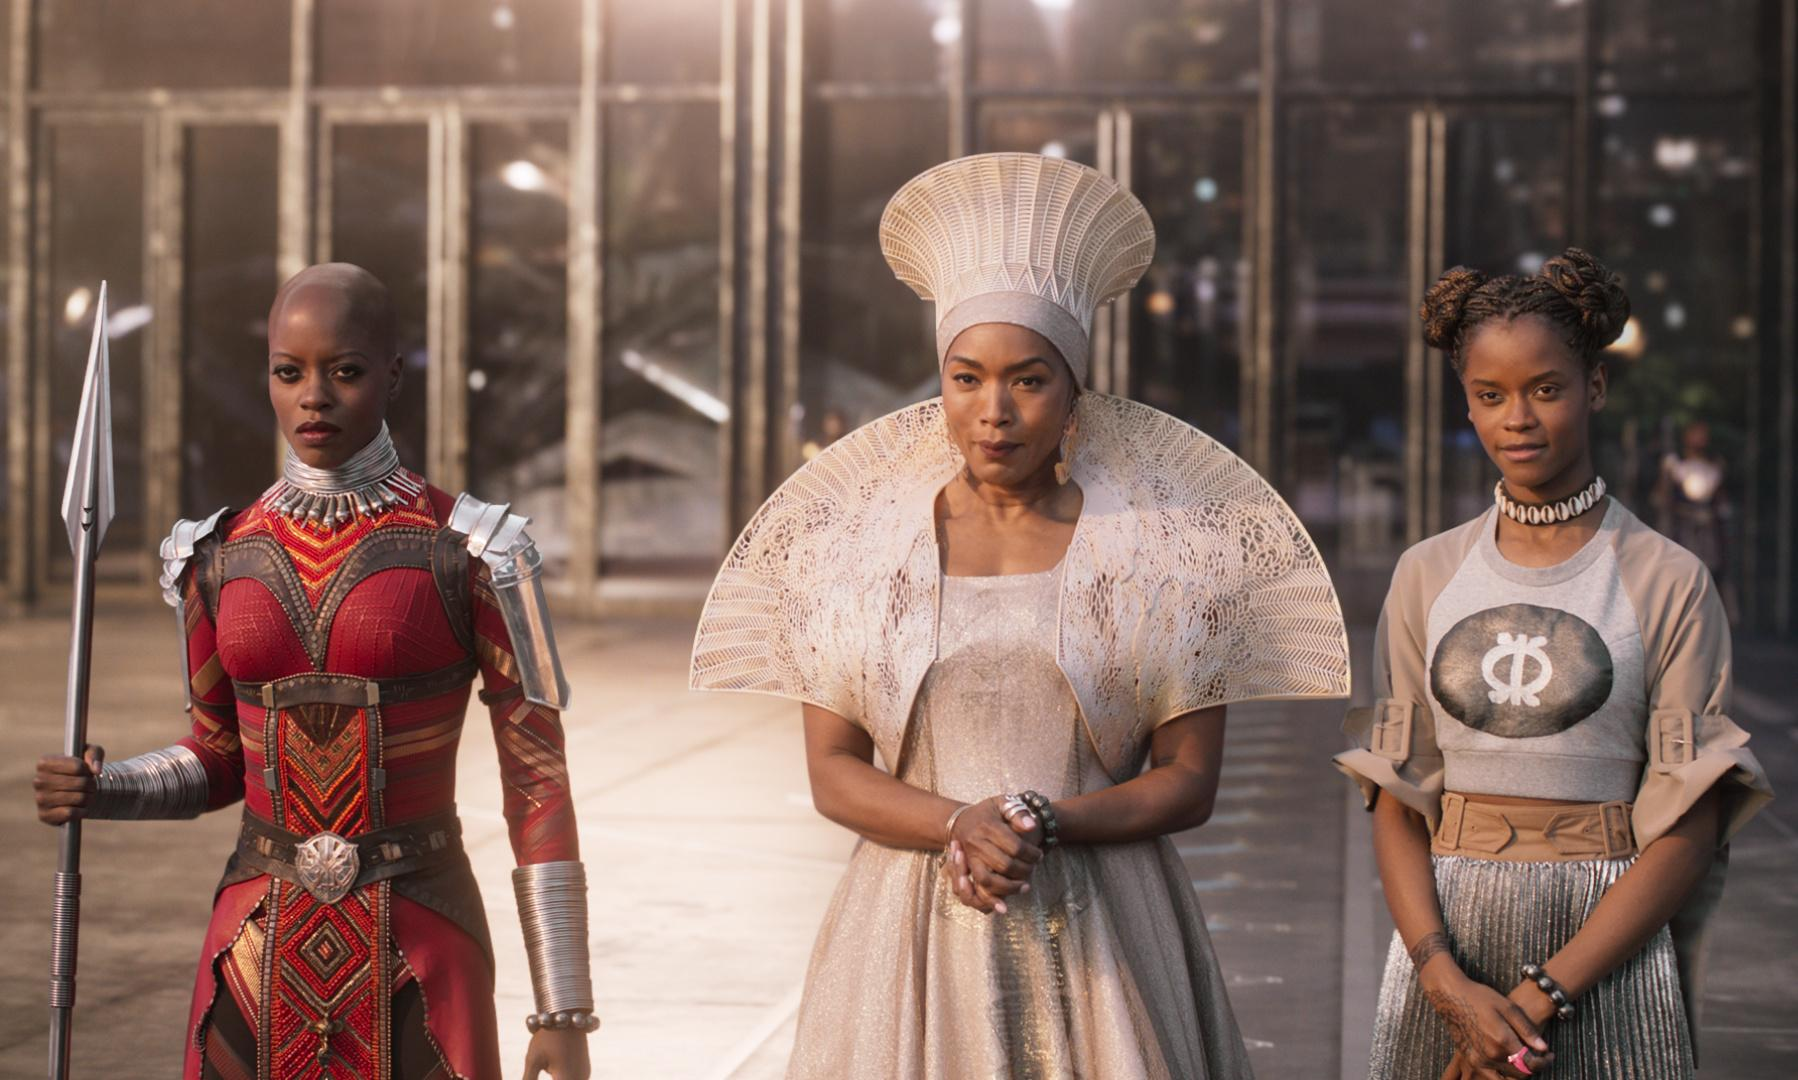 Black Panther deserves an Oscar – but is it a feminist film? No way